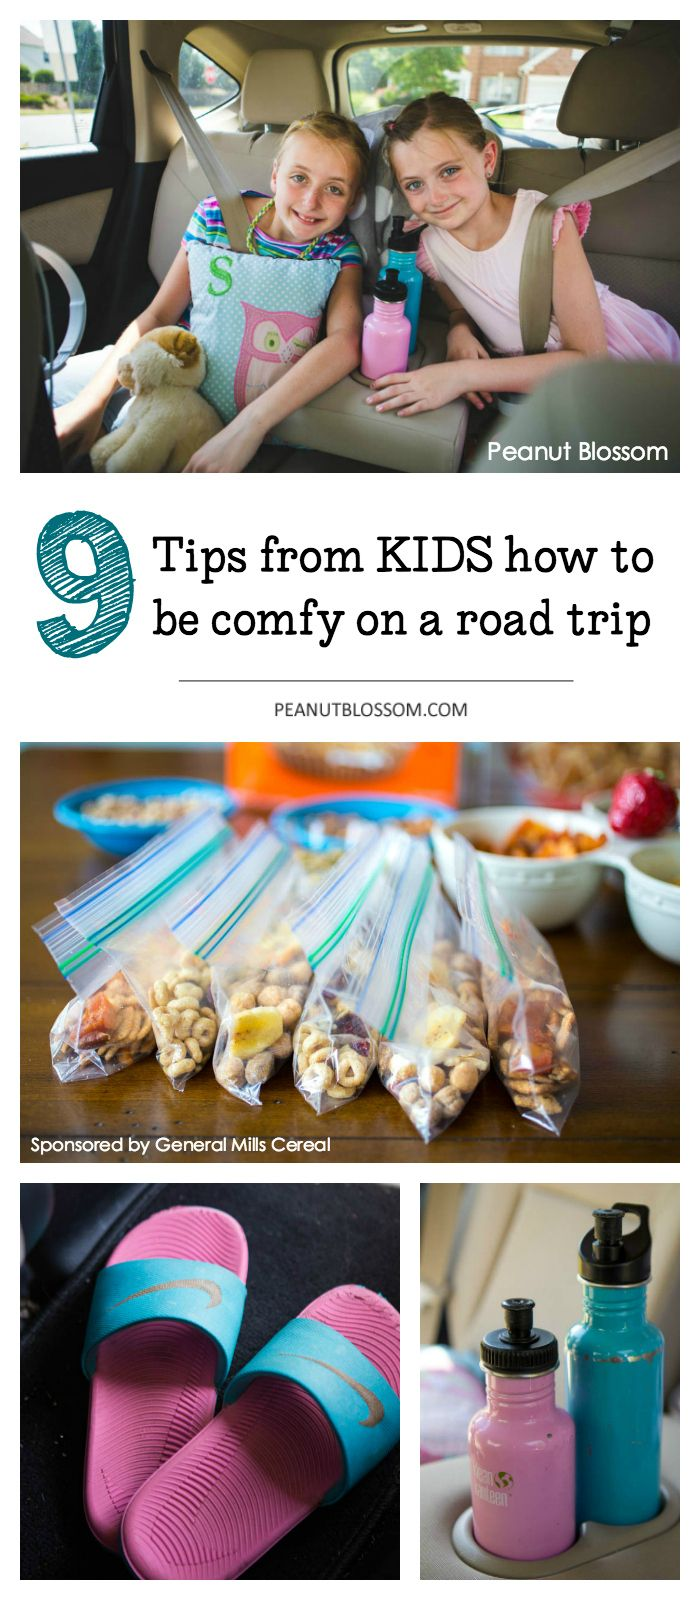 How to make trail mix: the best road trip snack ever! 3 snack recipes for kids to bring on your next family trip. Along with great tips for keeping the kids happy on a long road trip. #travelwithkids #roadtripsnacks